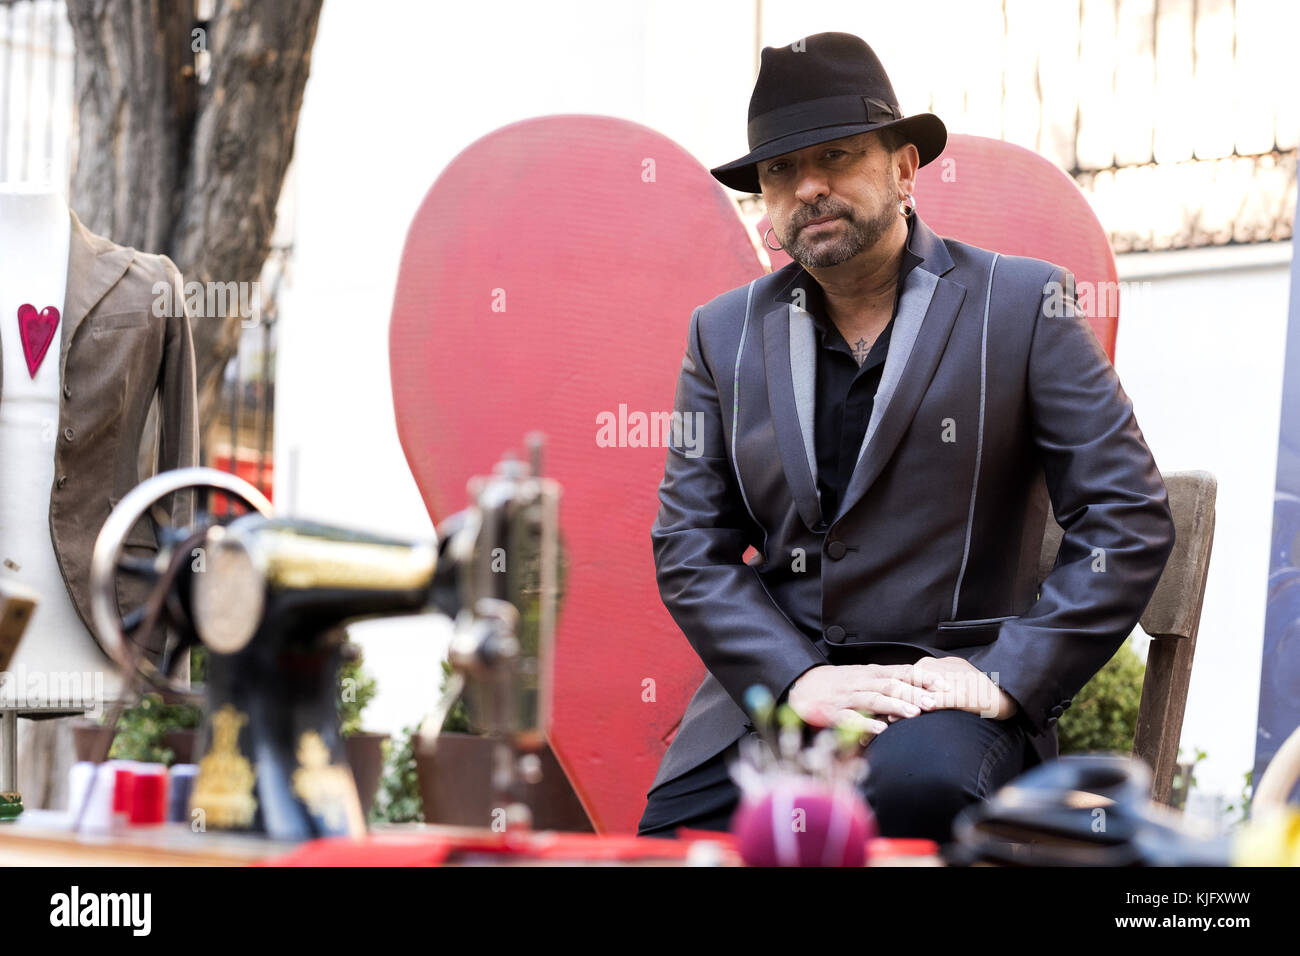 The singer El Barrio attends the presentation of his album 'Las Costuras del Alma' in Madrid, Spain.  Featuring: Stock Photo